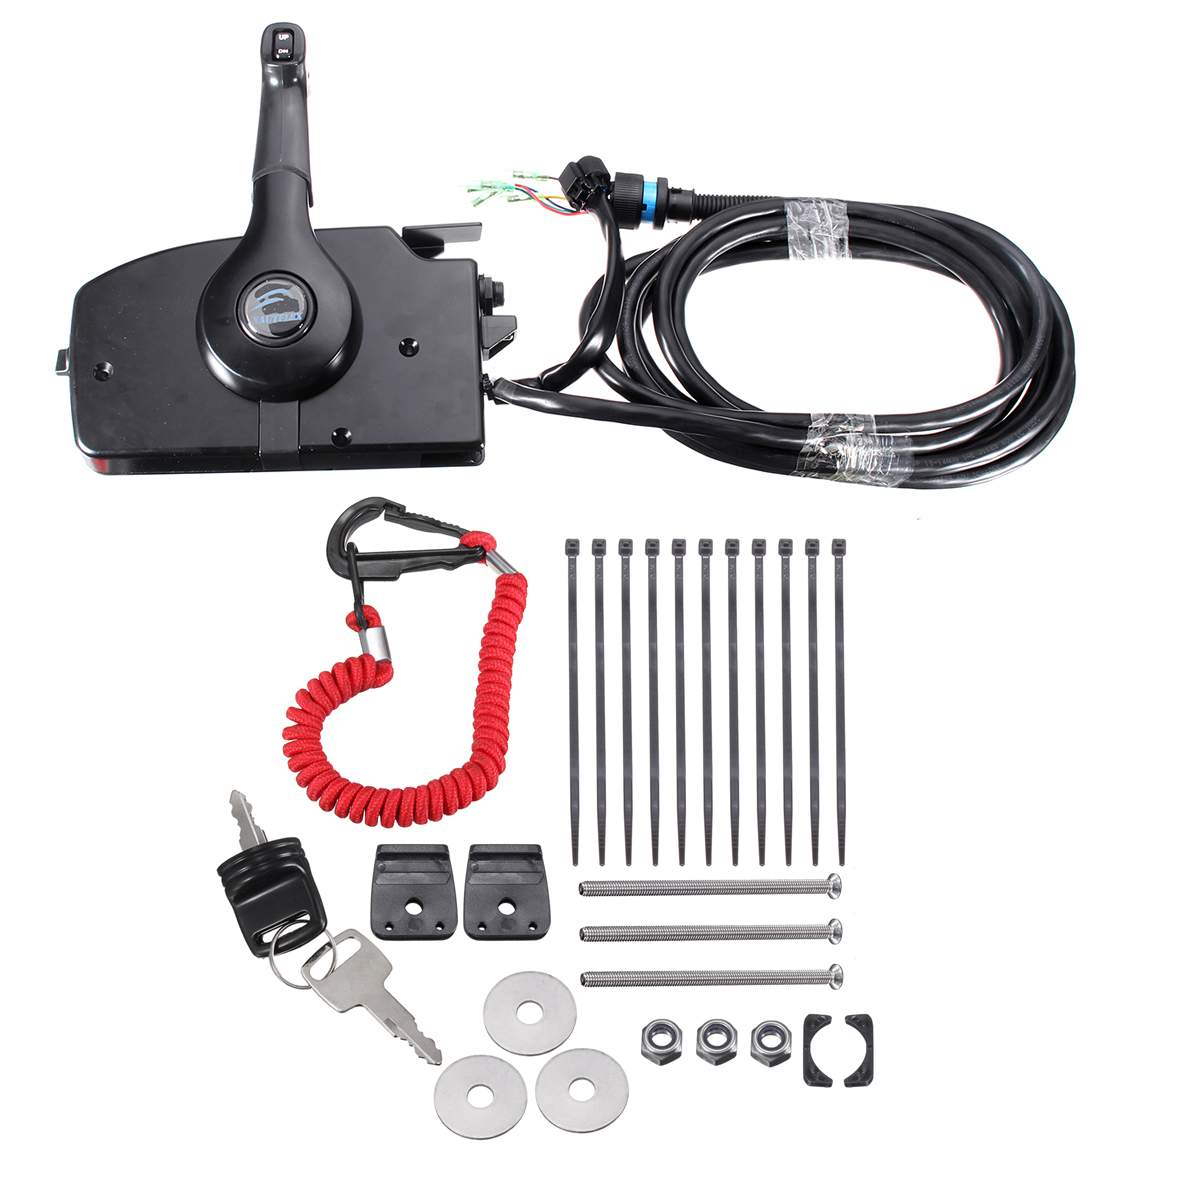 for Mercury Outboard Engine Side Mount With 14 Pin Cable Boat Remote Control Box Up/Down switch Include Forward/reverse Lever